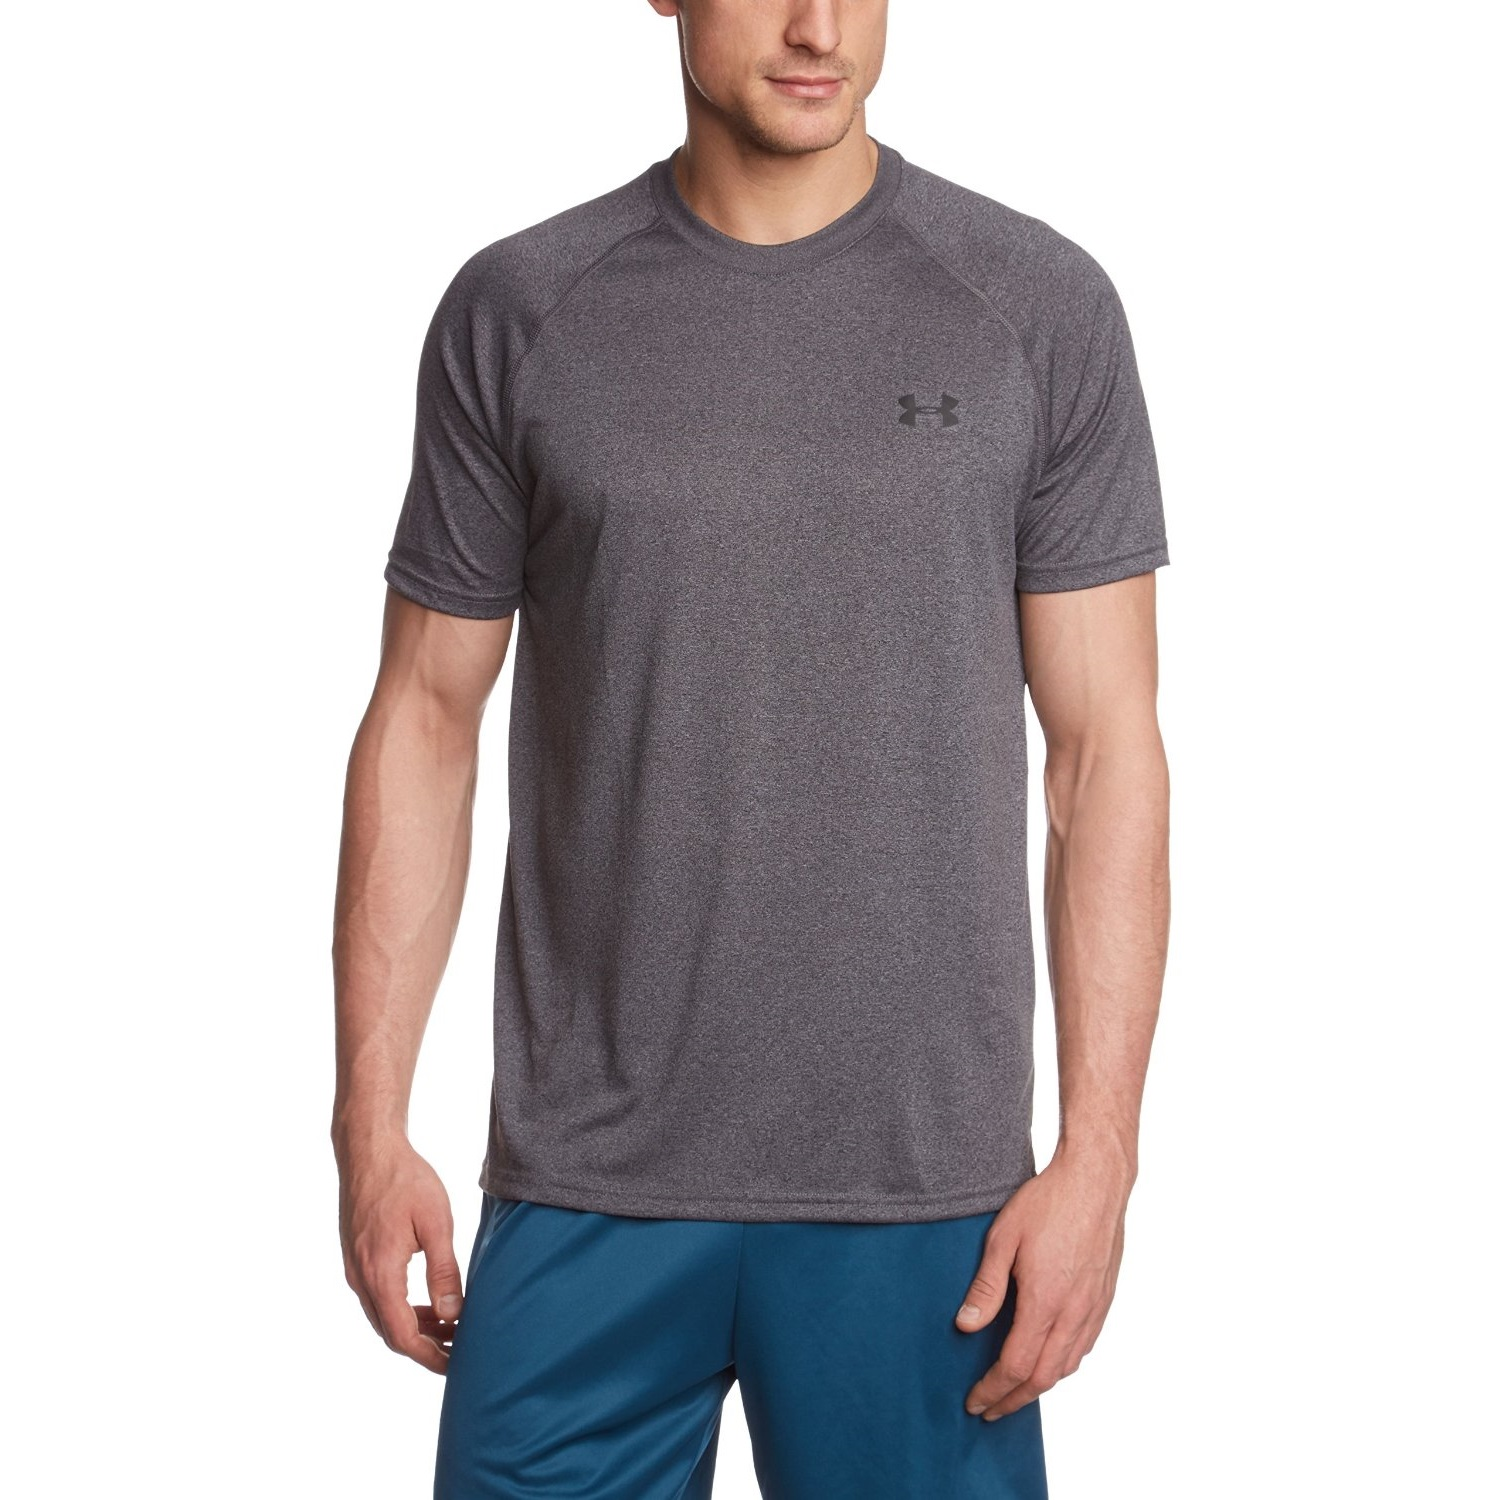 under armour mens tech short sleeve carbon heather black yoga t-shirt 5e83e4b2a